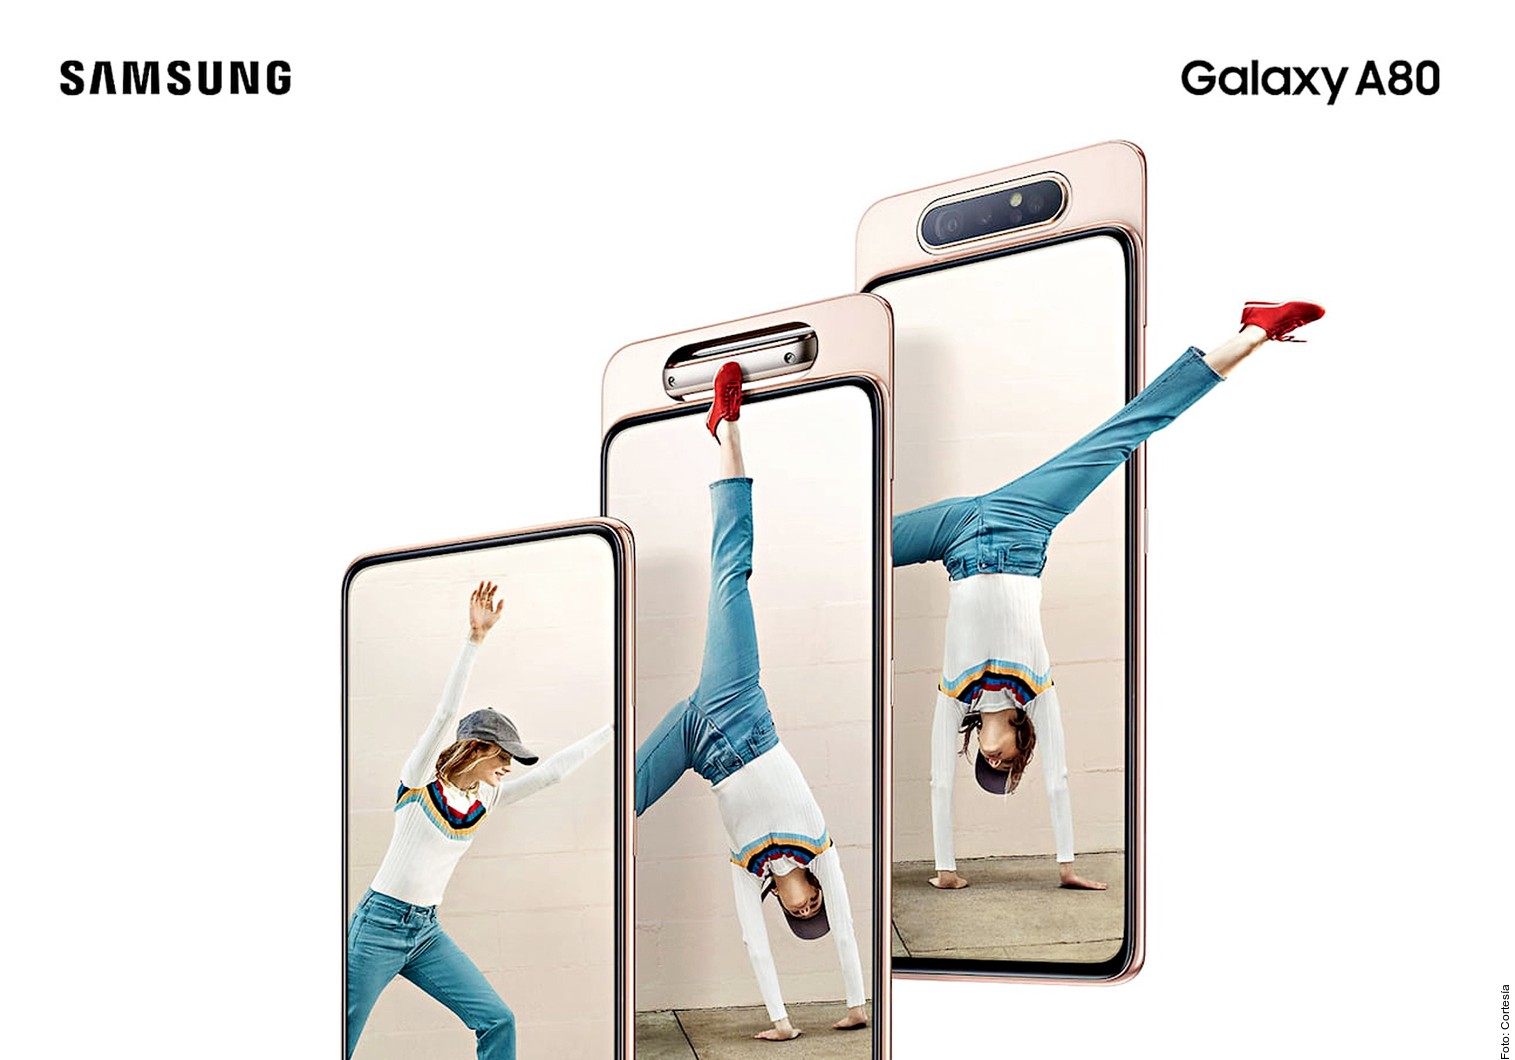 Samsung Galaxy A80 Signals the Beginning of the Notch-less Era